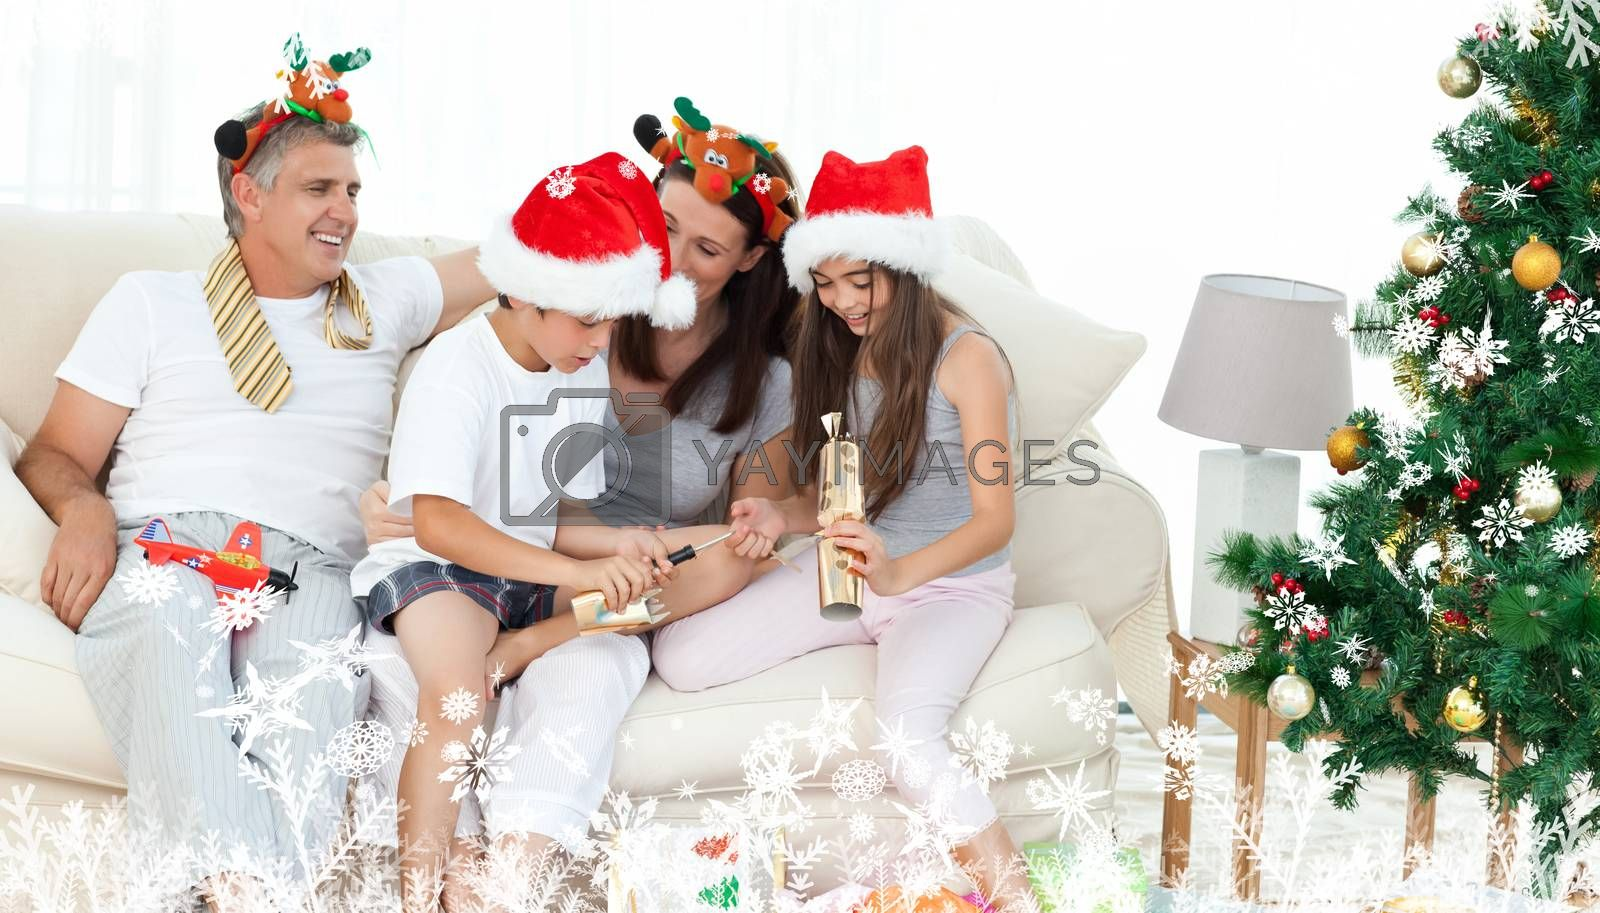 Composite image of a Family on Christmas day looking at their presents at home against frost